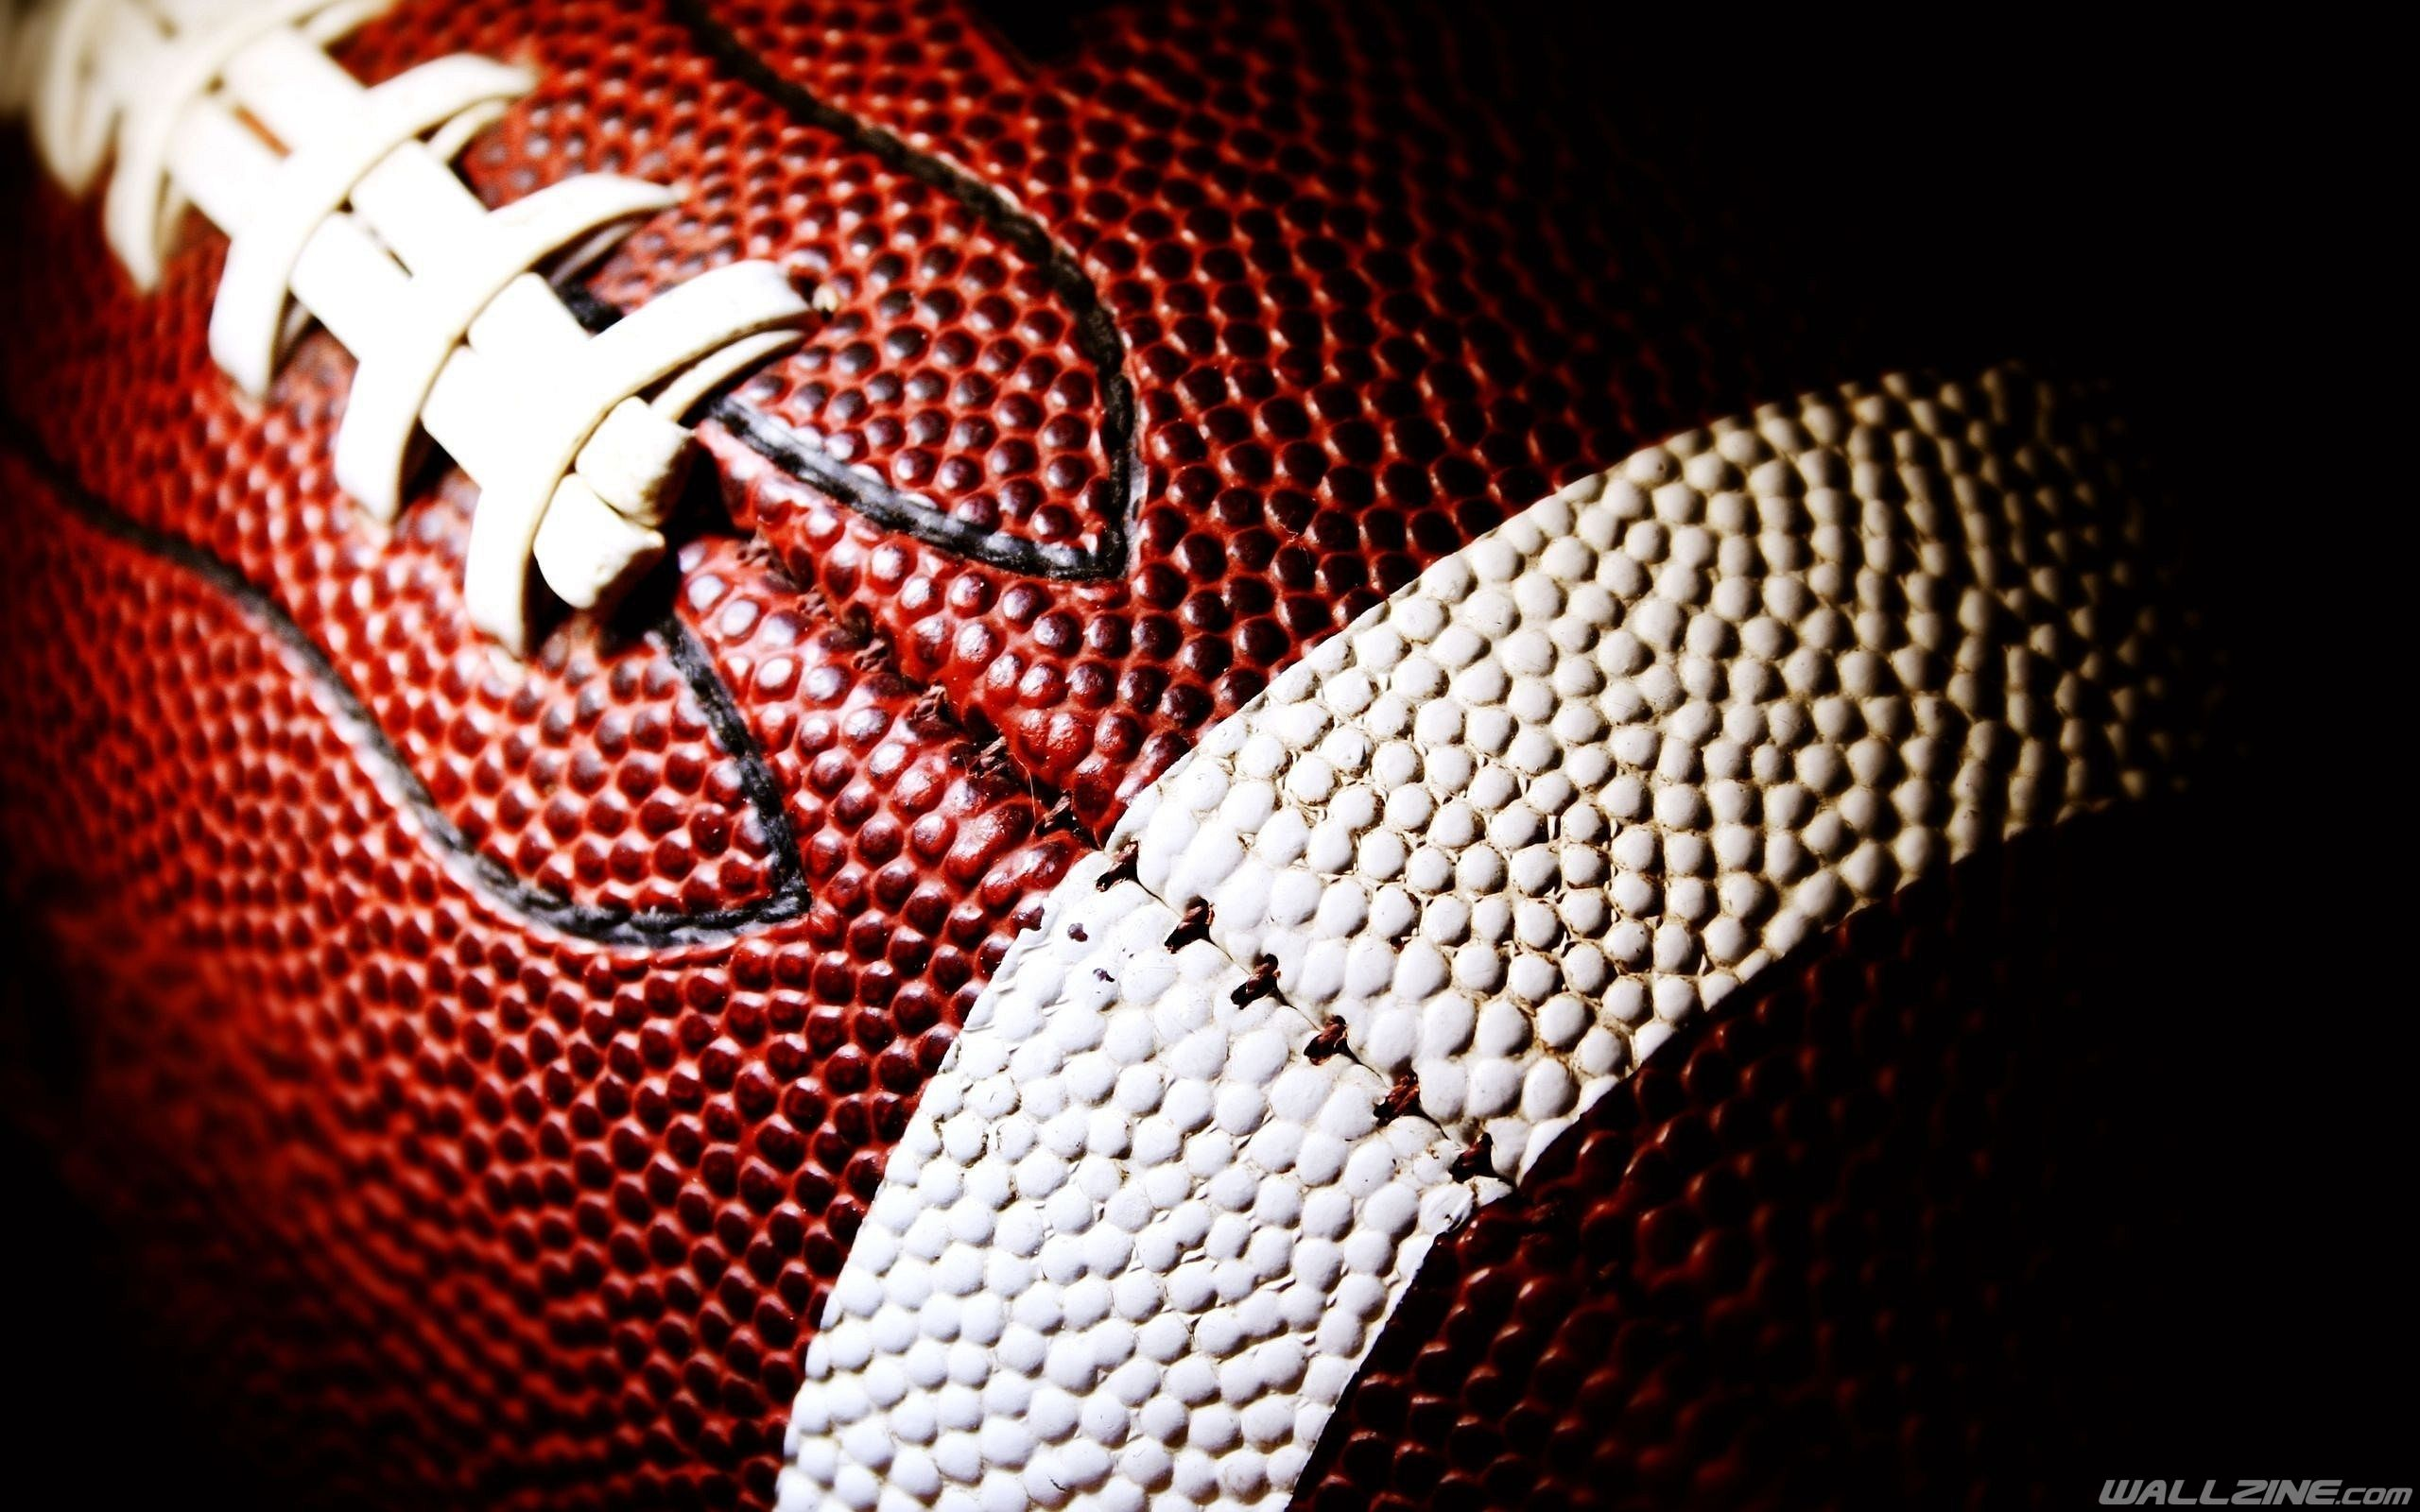 Rugby Ball Close Up Hd Desktop Wallpaper Wallzine Com Football Background Alabama Football Pictures American Football